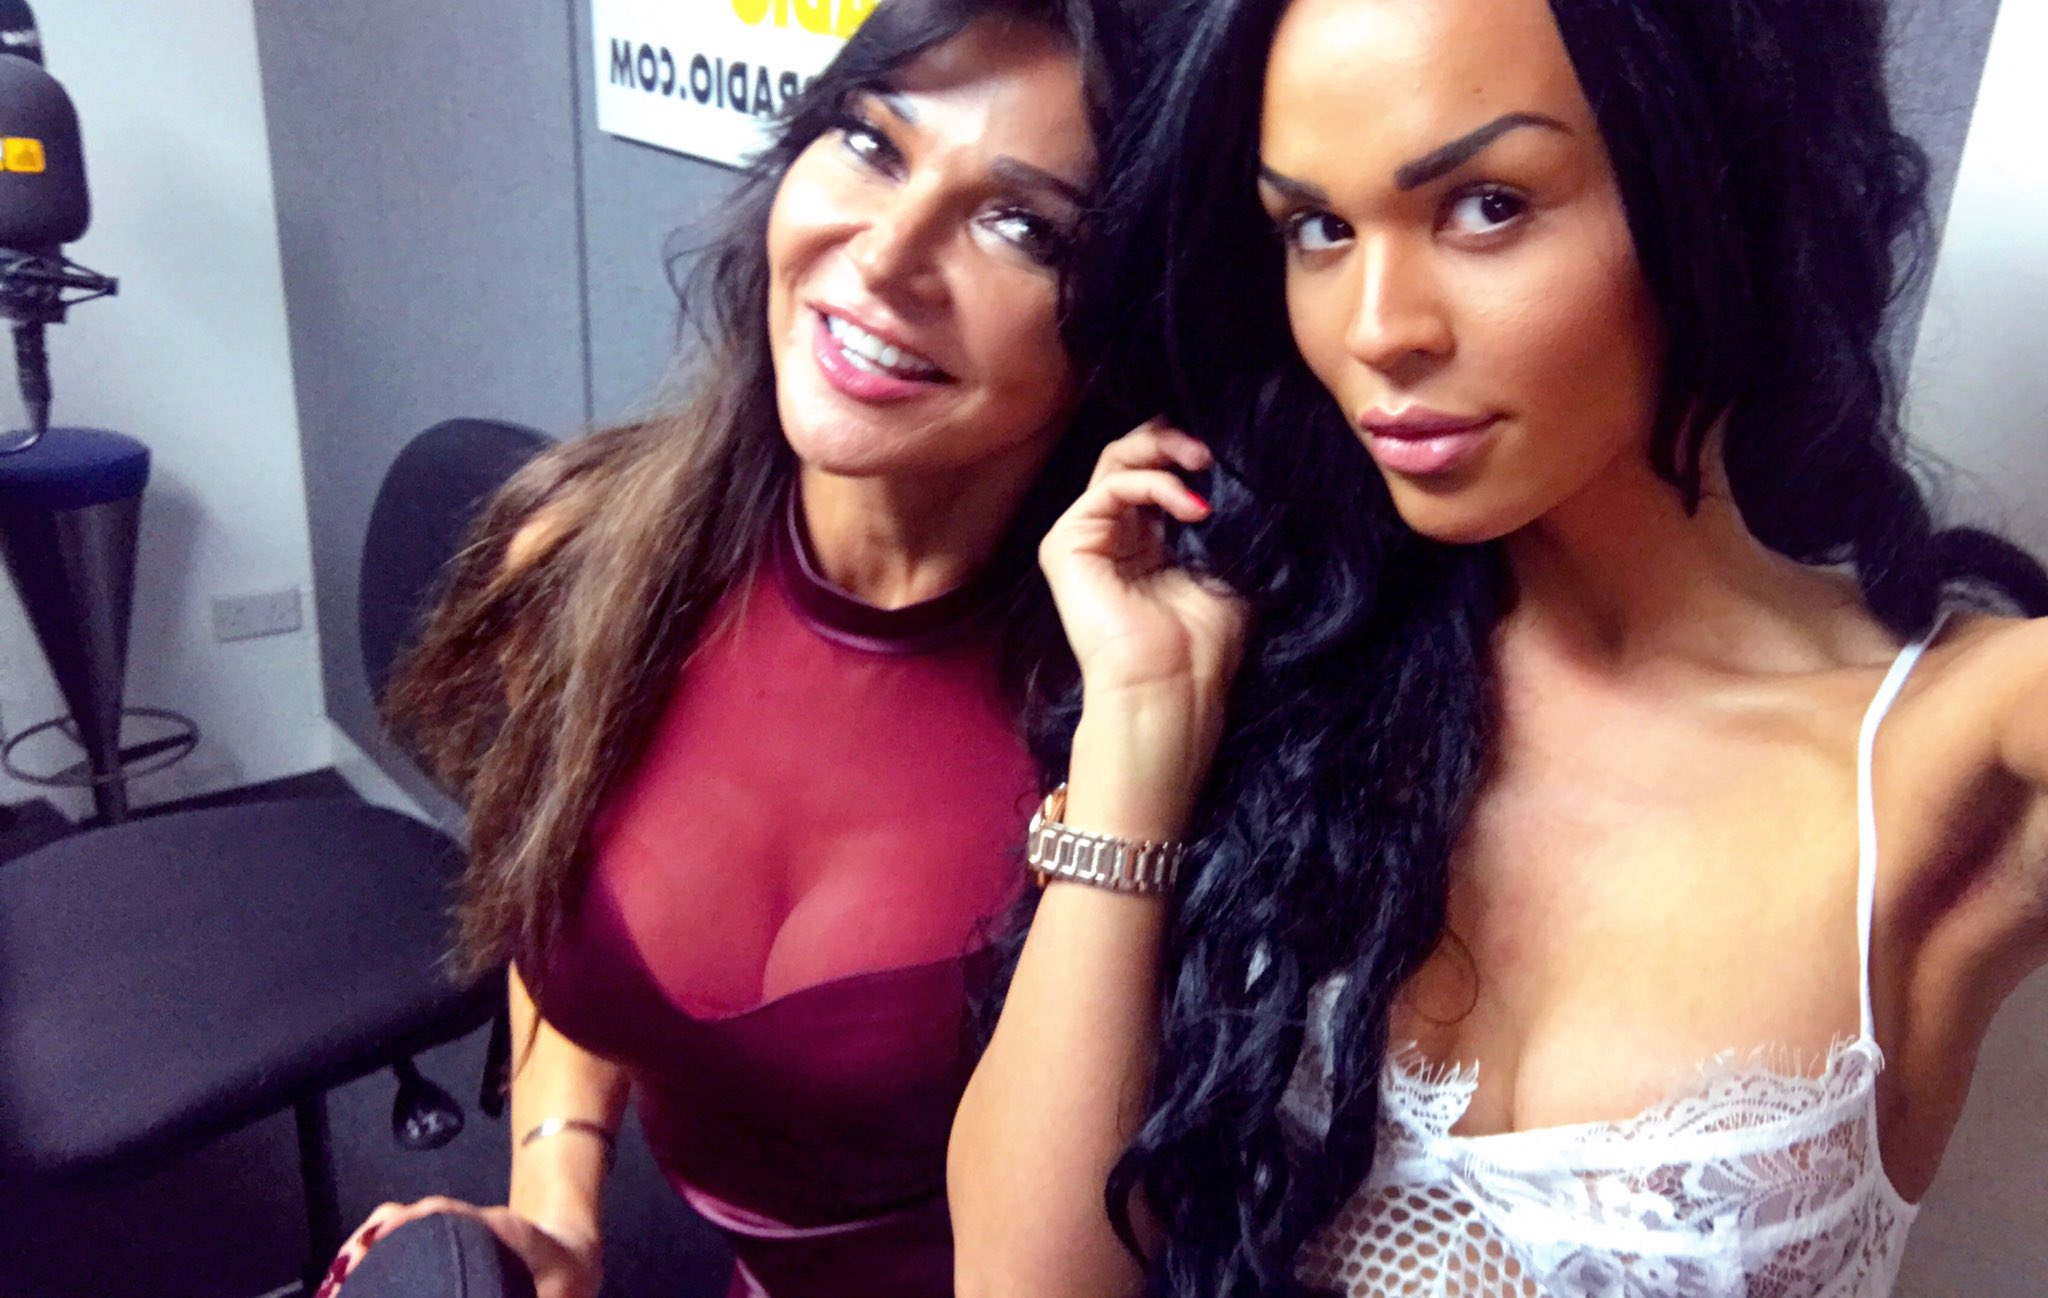 RT @TalulahEve: Lovely catching up with the fabulous @lizziecundy last night on @FubarRadio 💖🎙📻 https://t.co/RqiCua9pTq